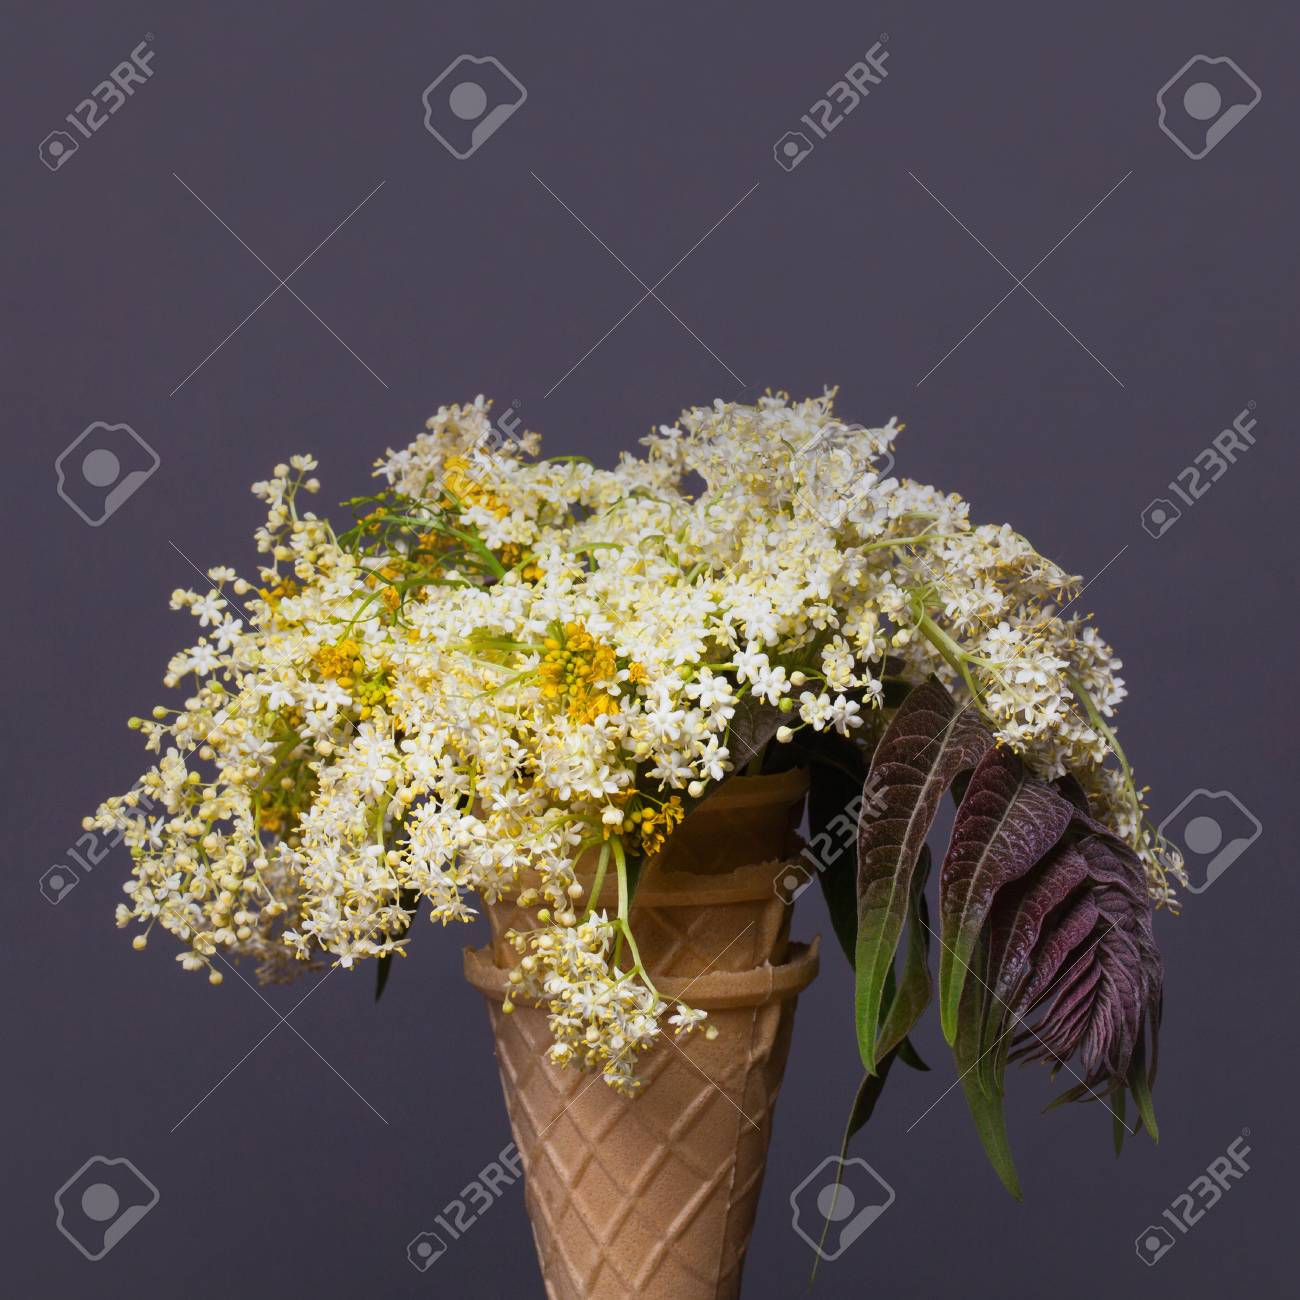 White And Yellow Flower Bouquet In Waffle Ice Cream Cone On Grey